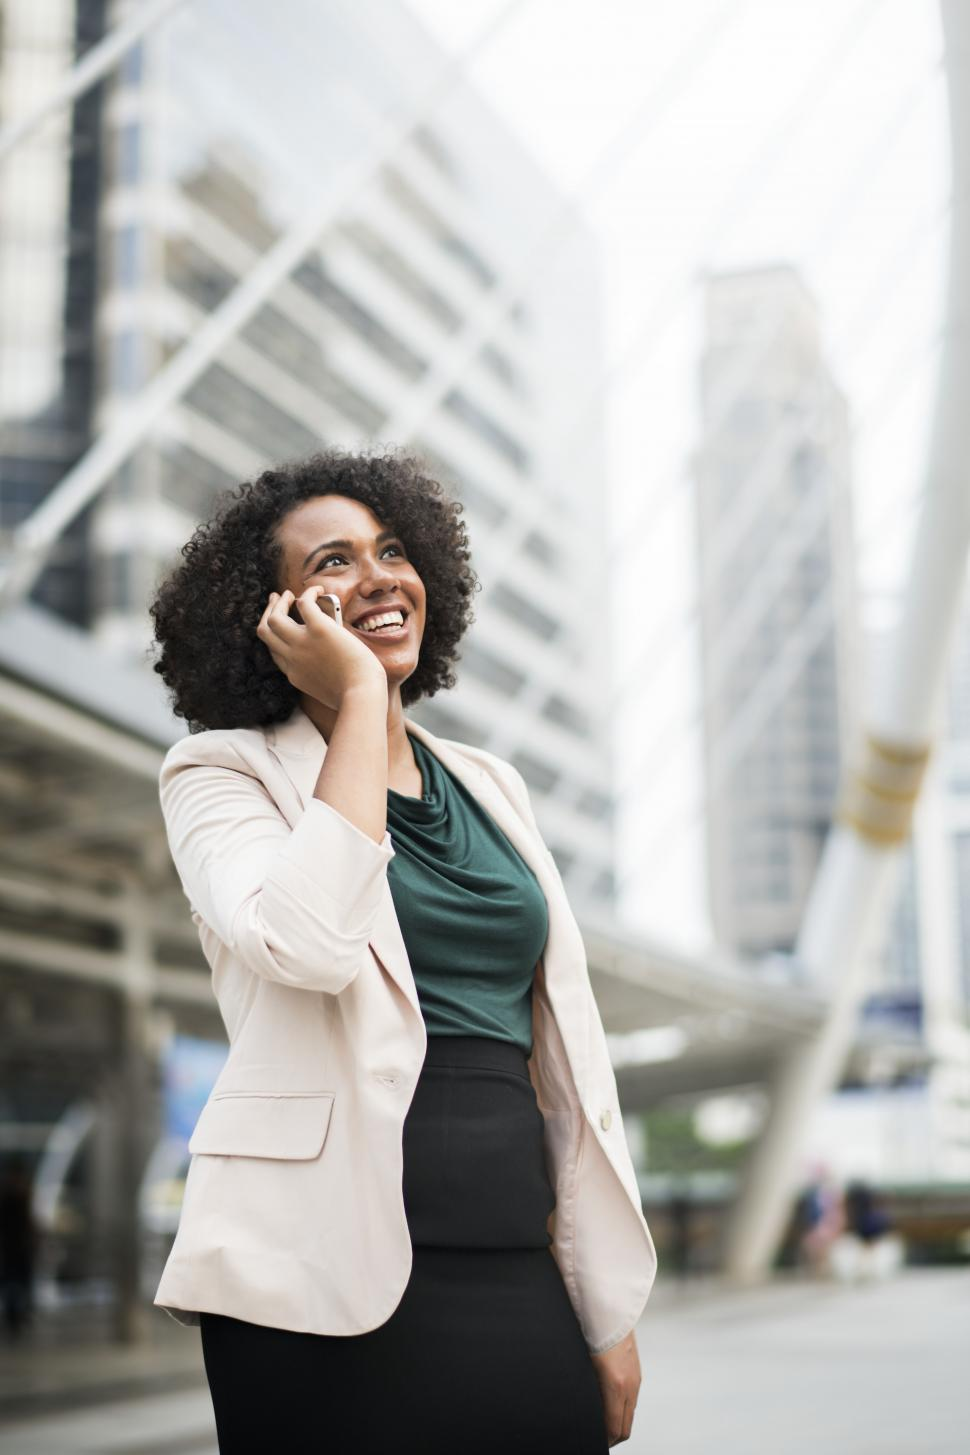 Download Free Stock HD Photo of A young woman outside in a city, speaking on a mobile phone Online